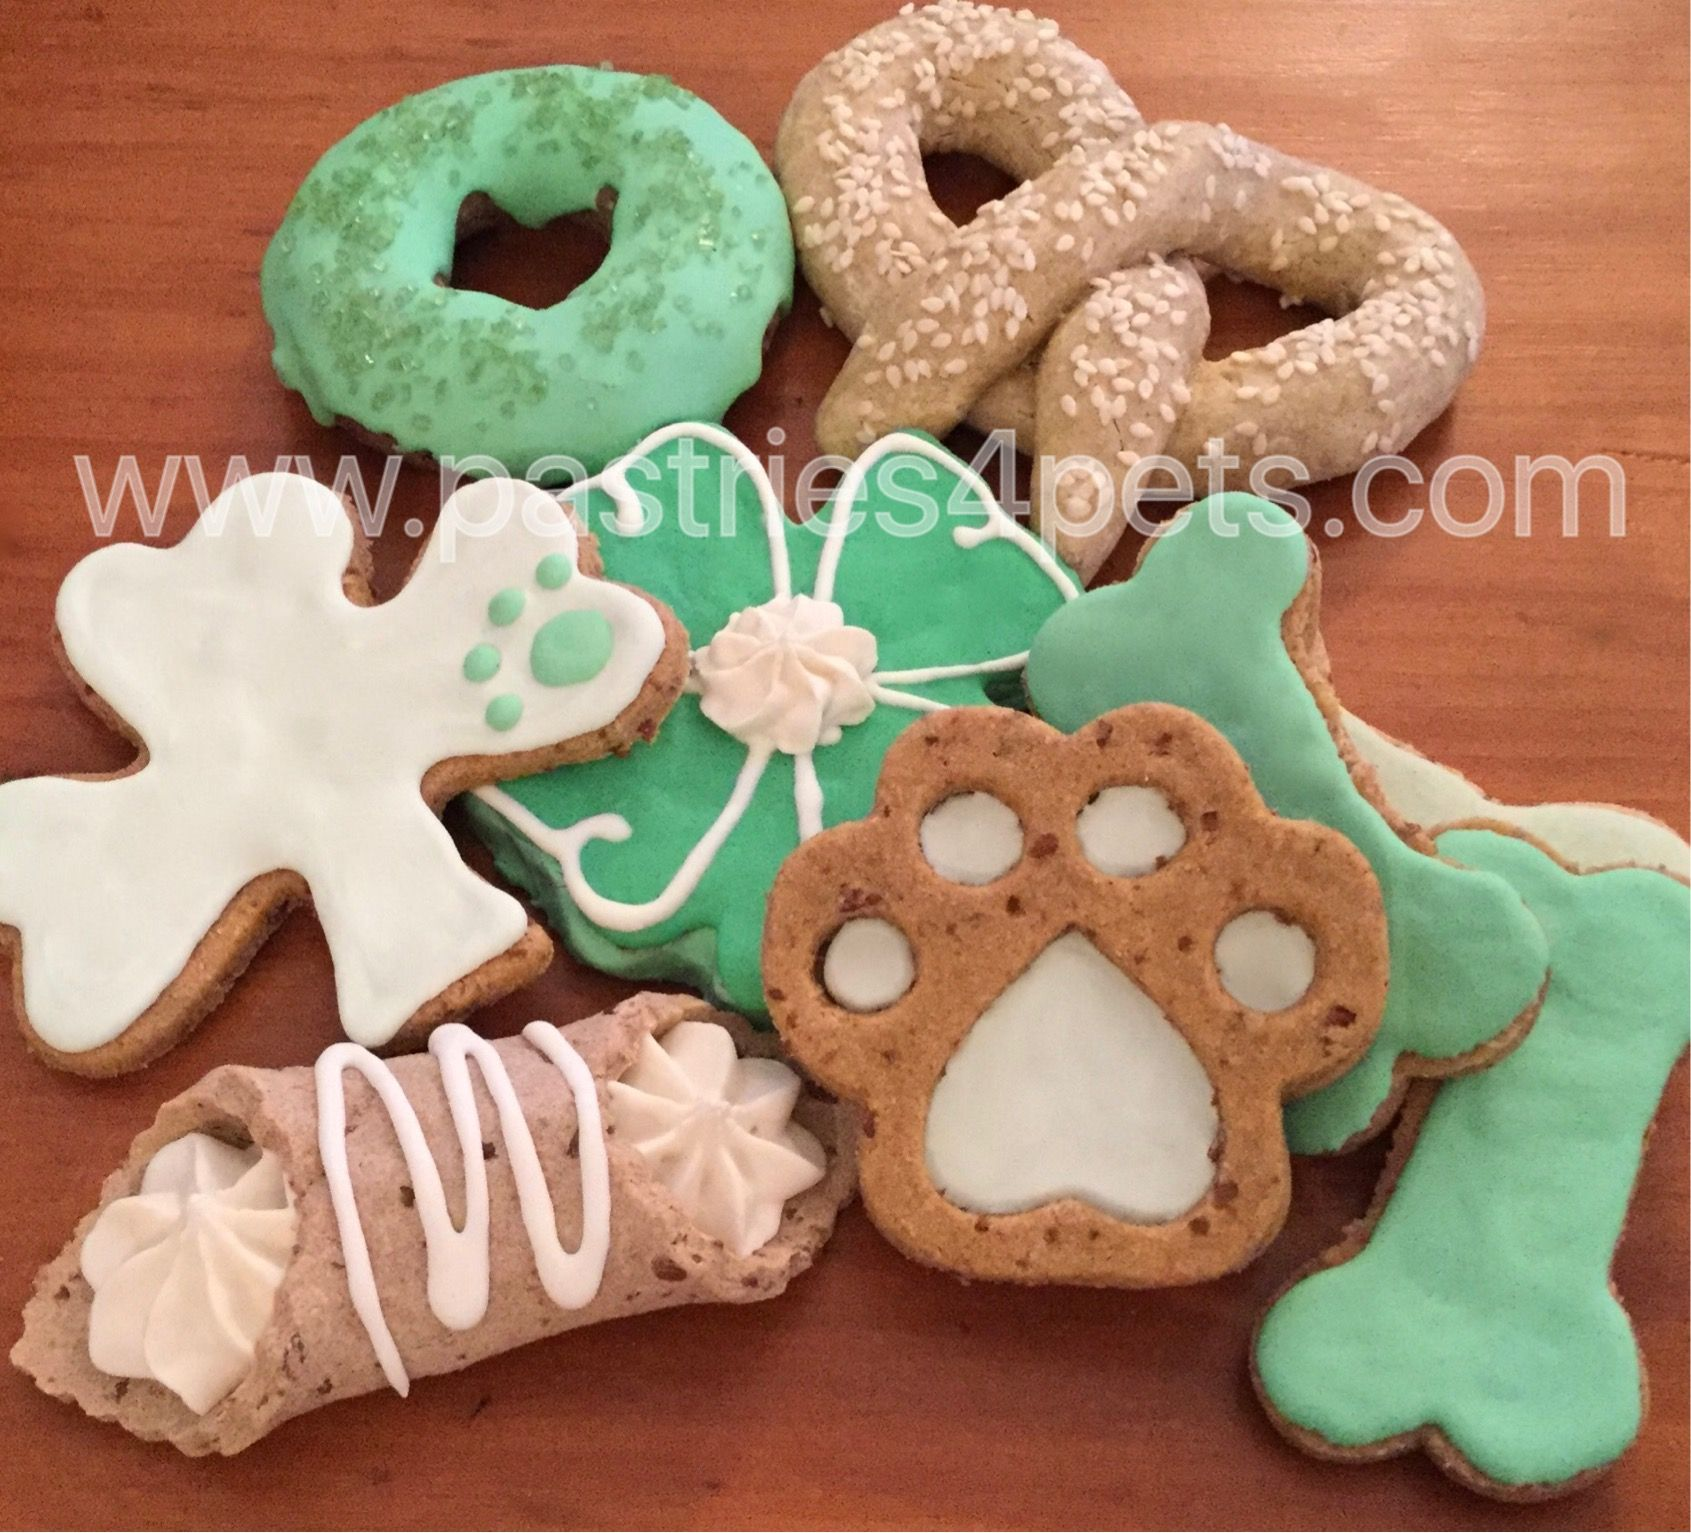 Fun With Treaty Treat Dog Treat Icing From Pastries4pets Com